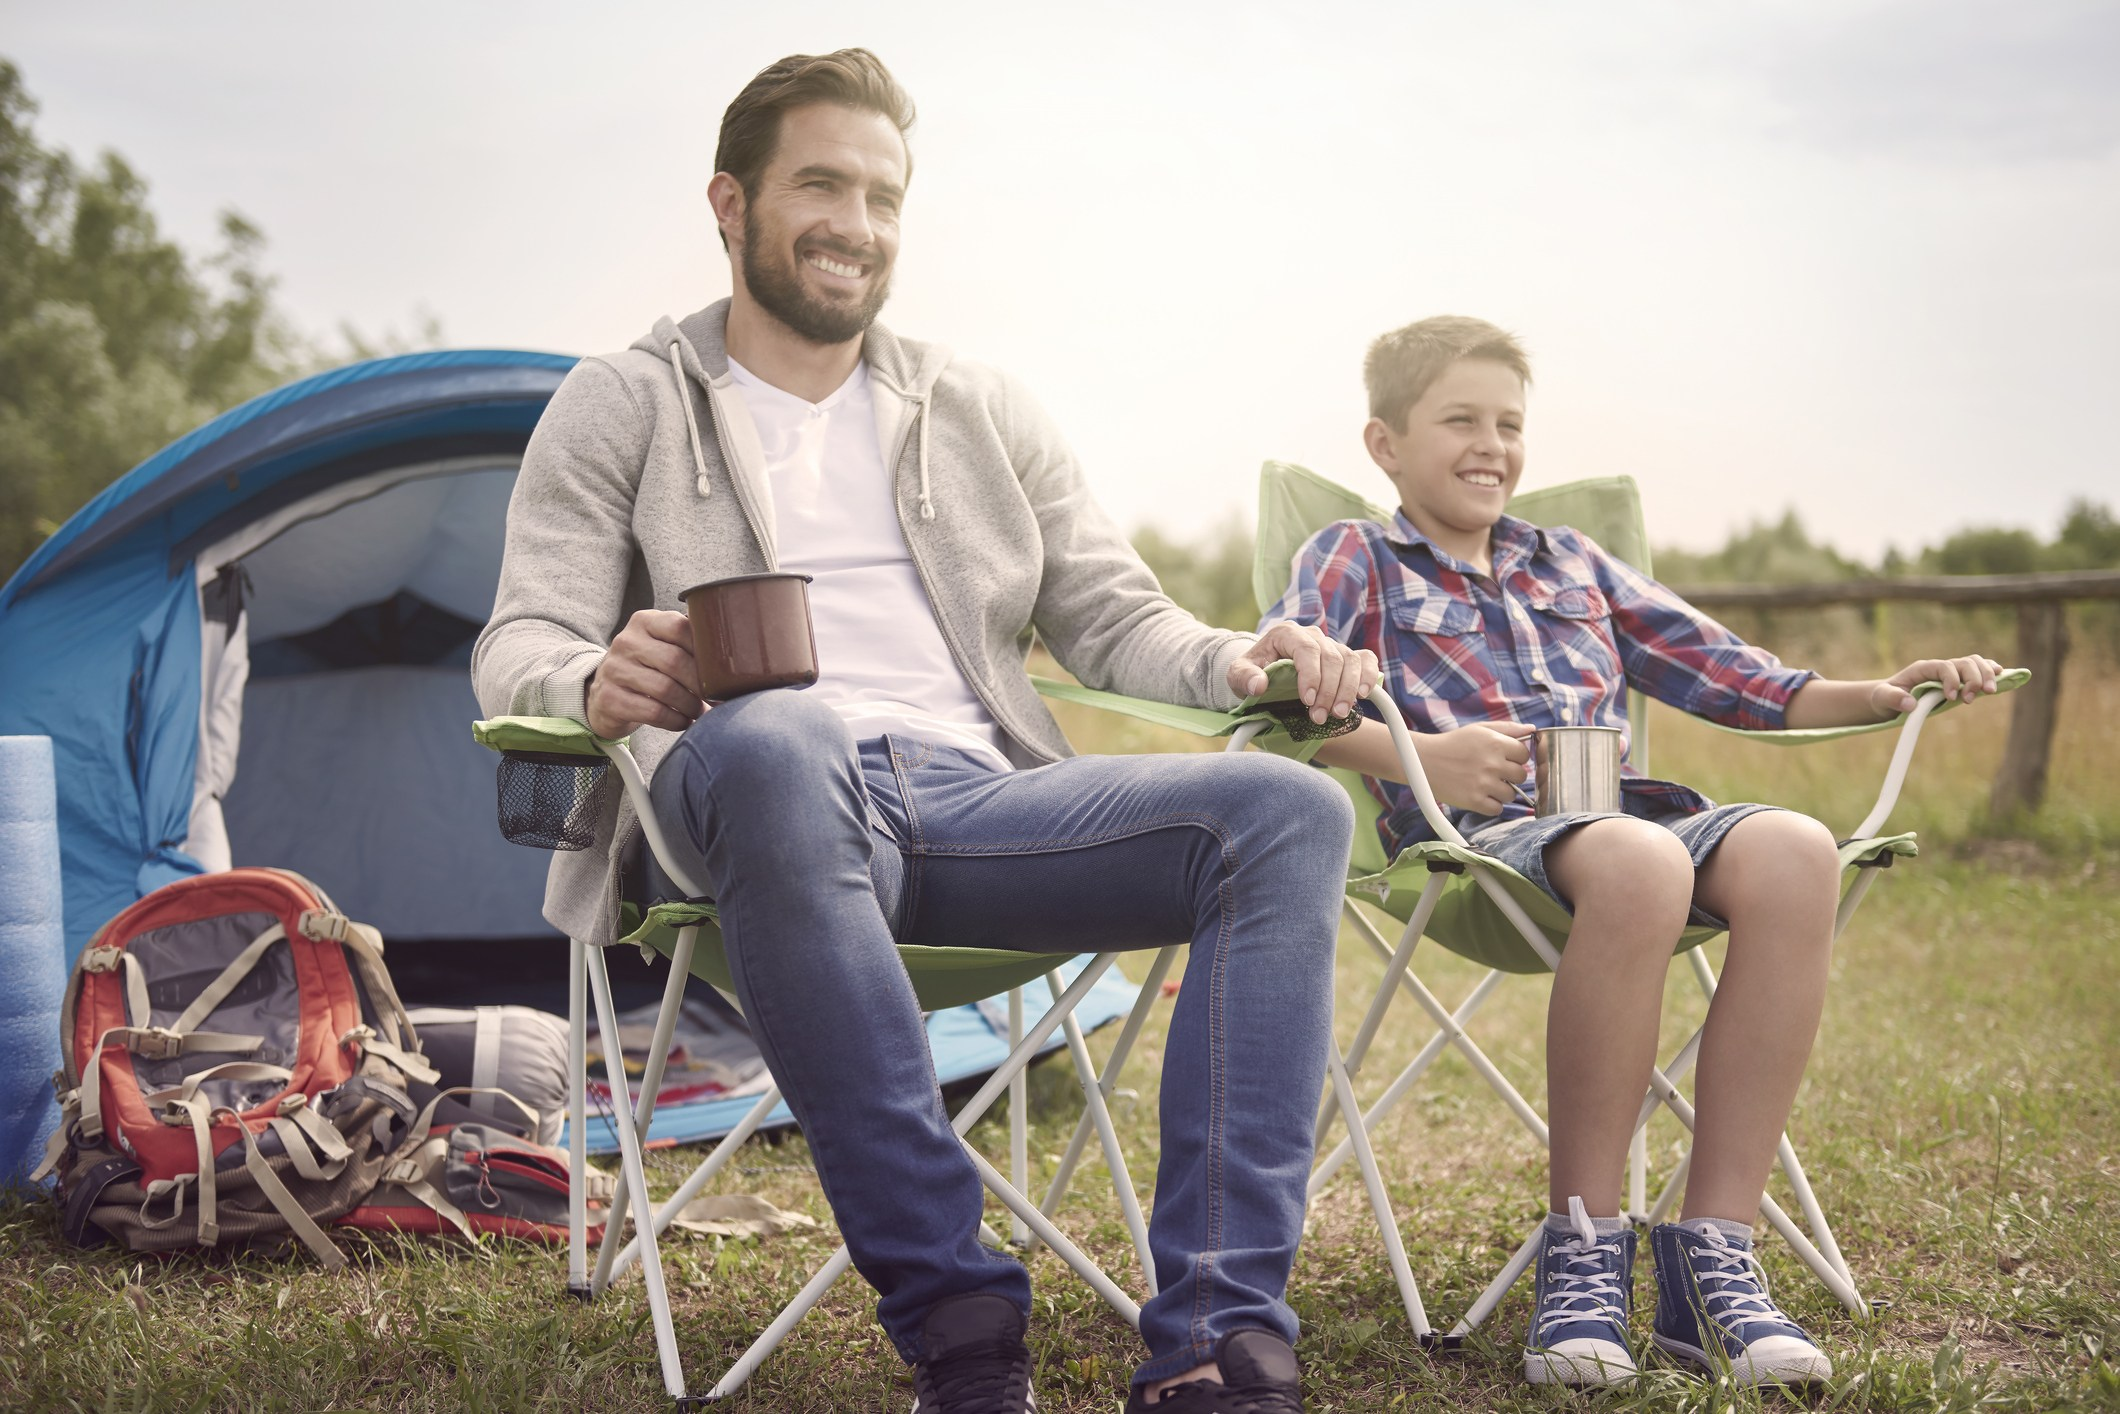 Father and son in camping chairs